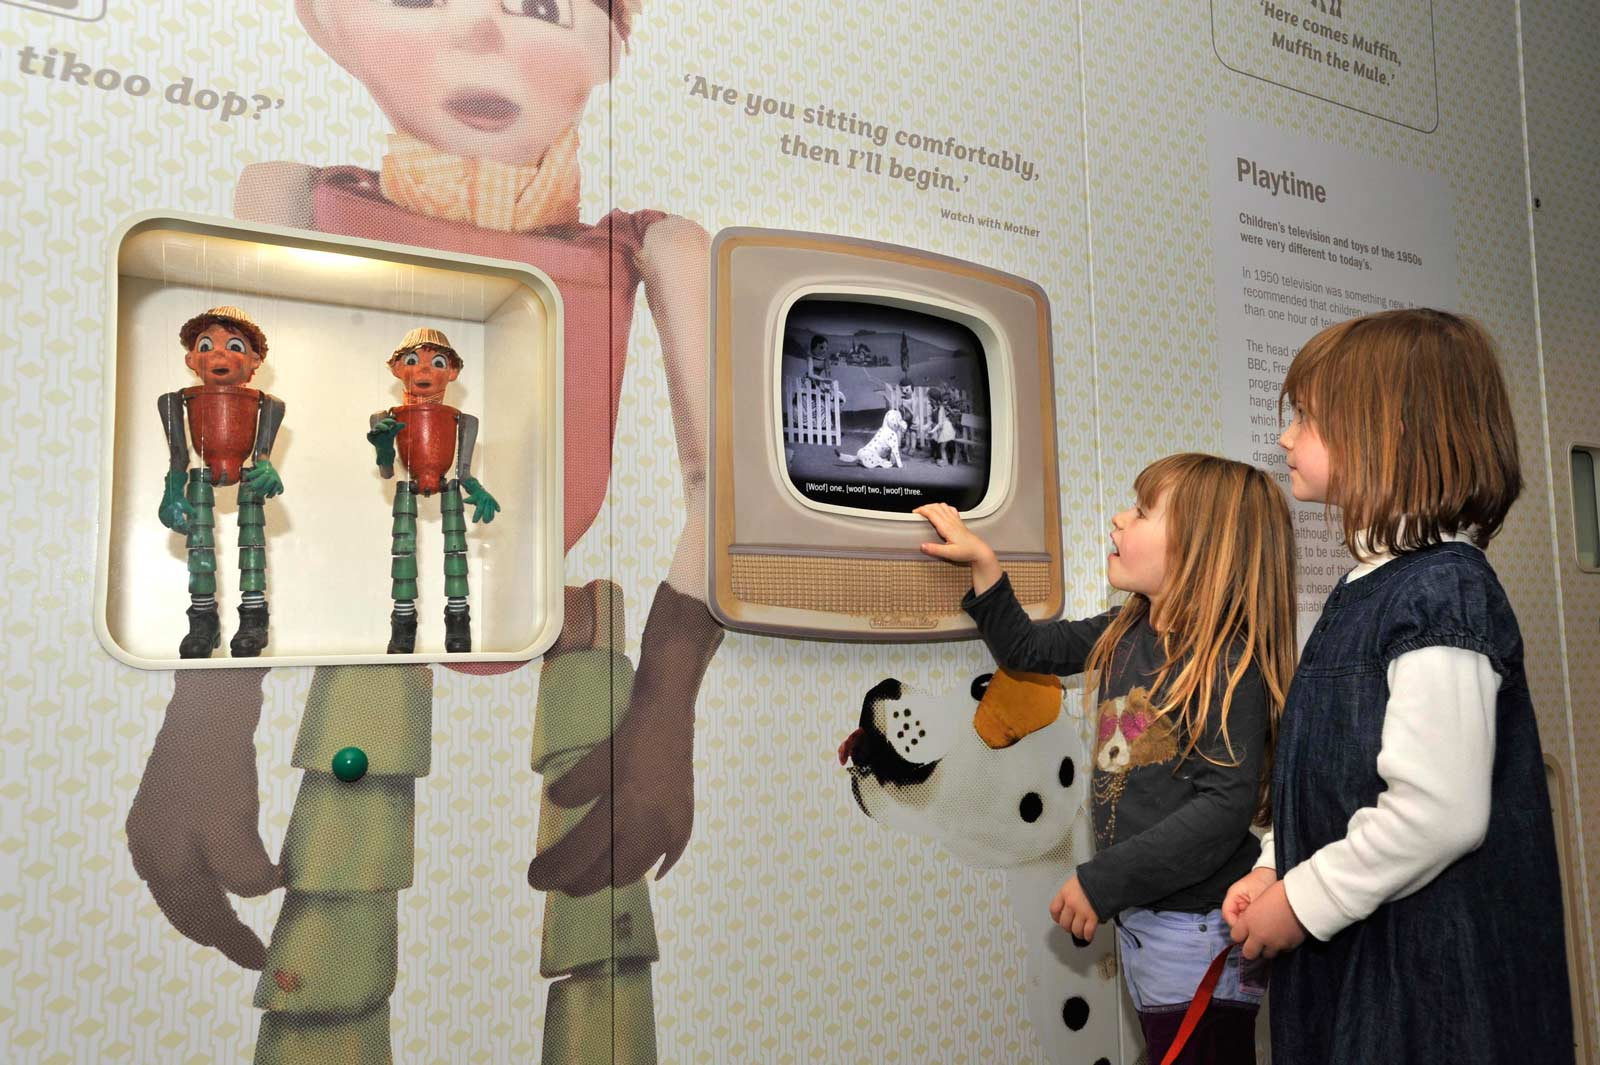 Children look at the Bill and Ben Flowerpot Men puppets on display in the World City gallery.